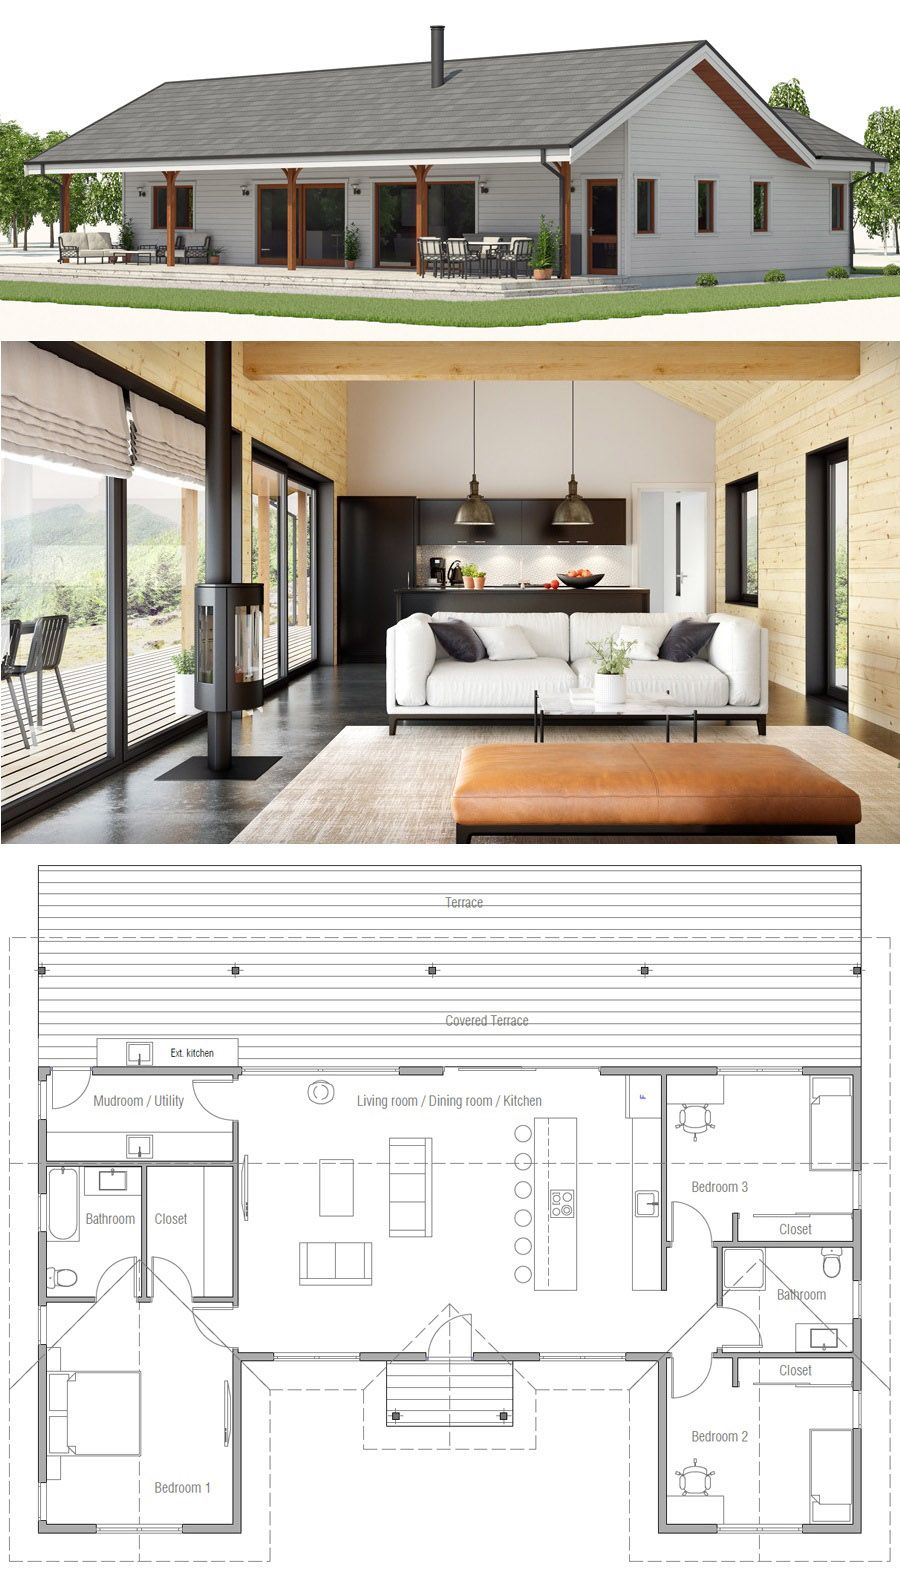 House designs home plans housedesign houseplansideas newhome also rh pinterest